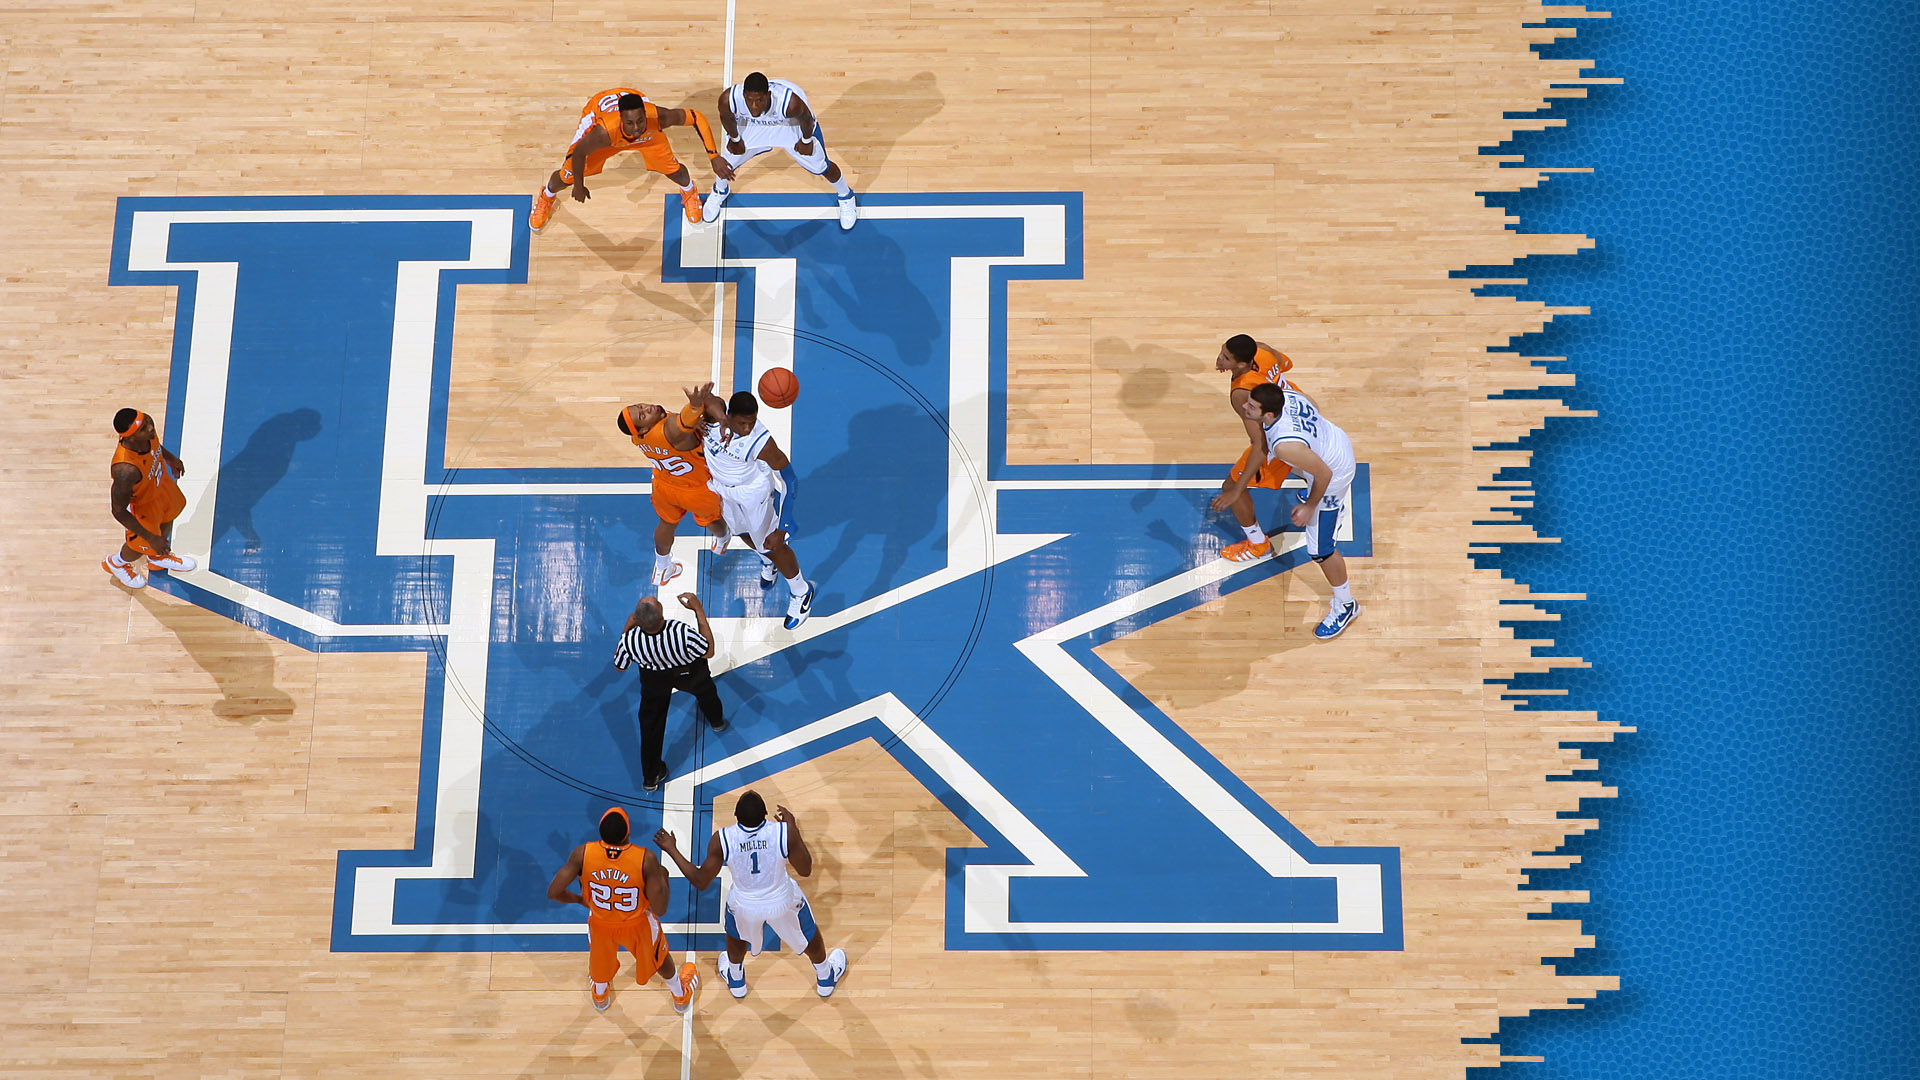 Kentucky Wildcats Basketball Wallpaper Collection 1920x1080